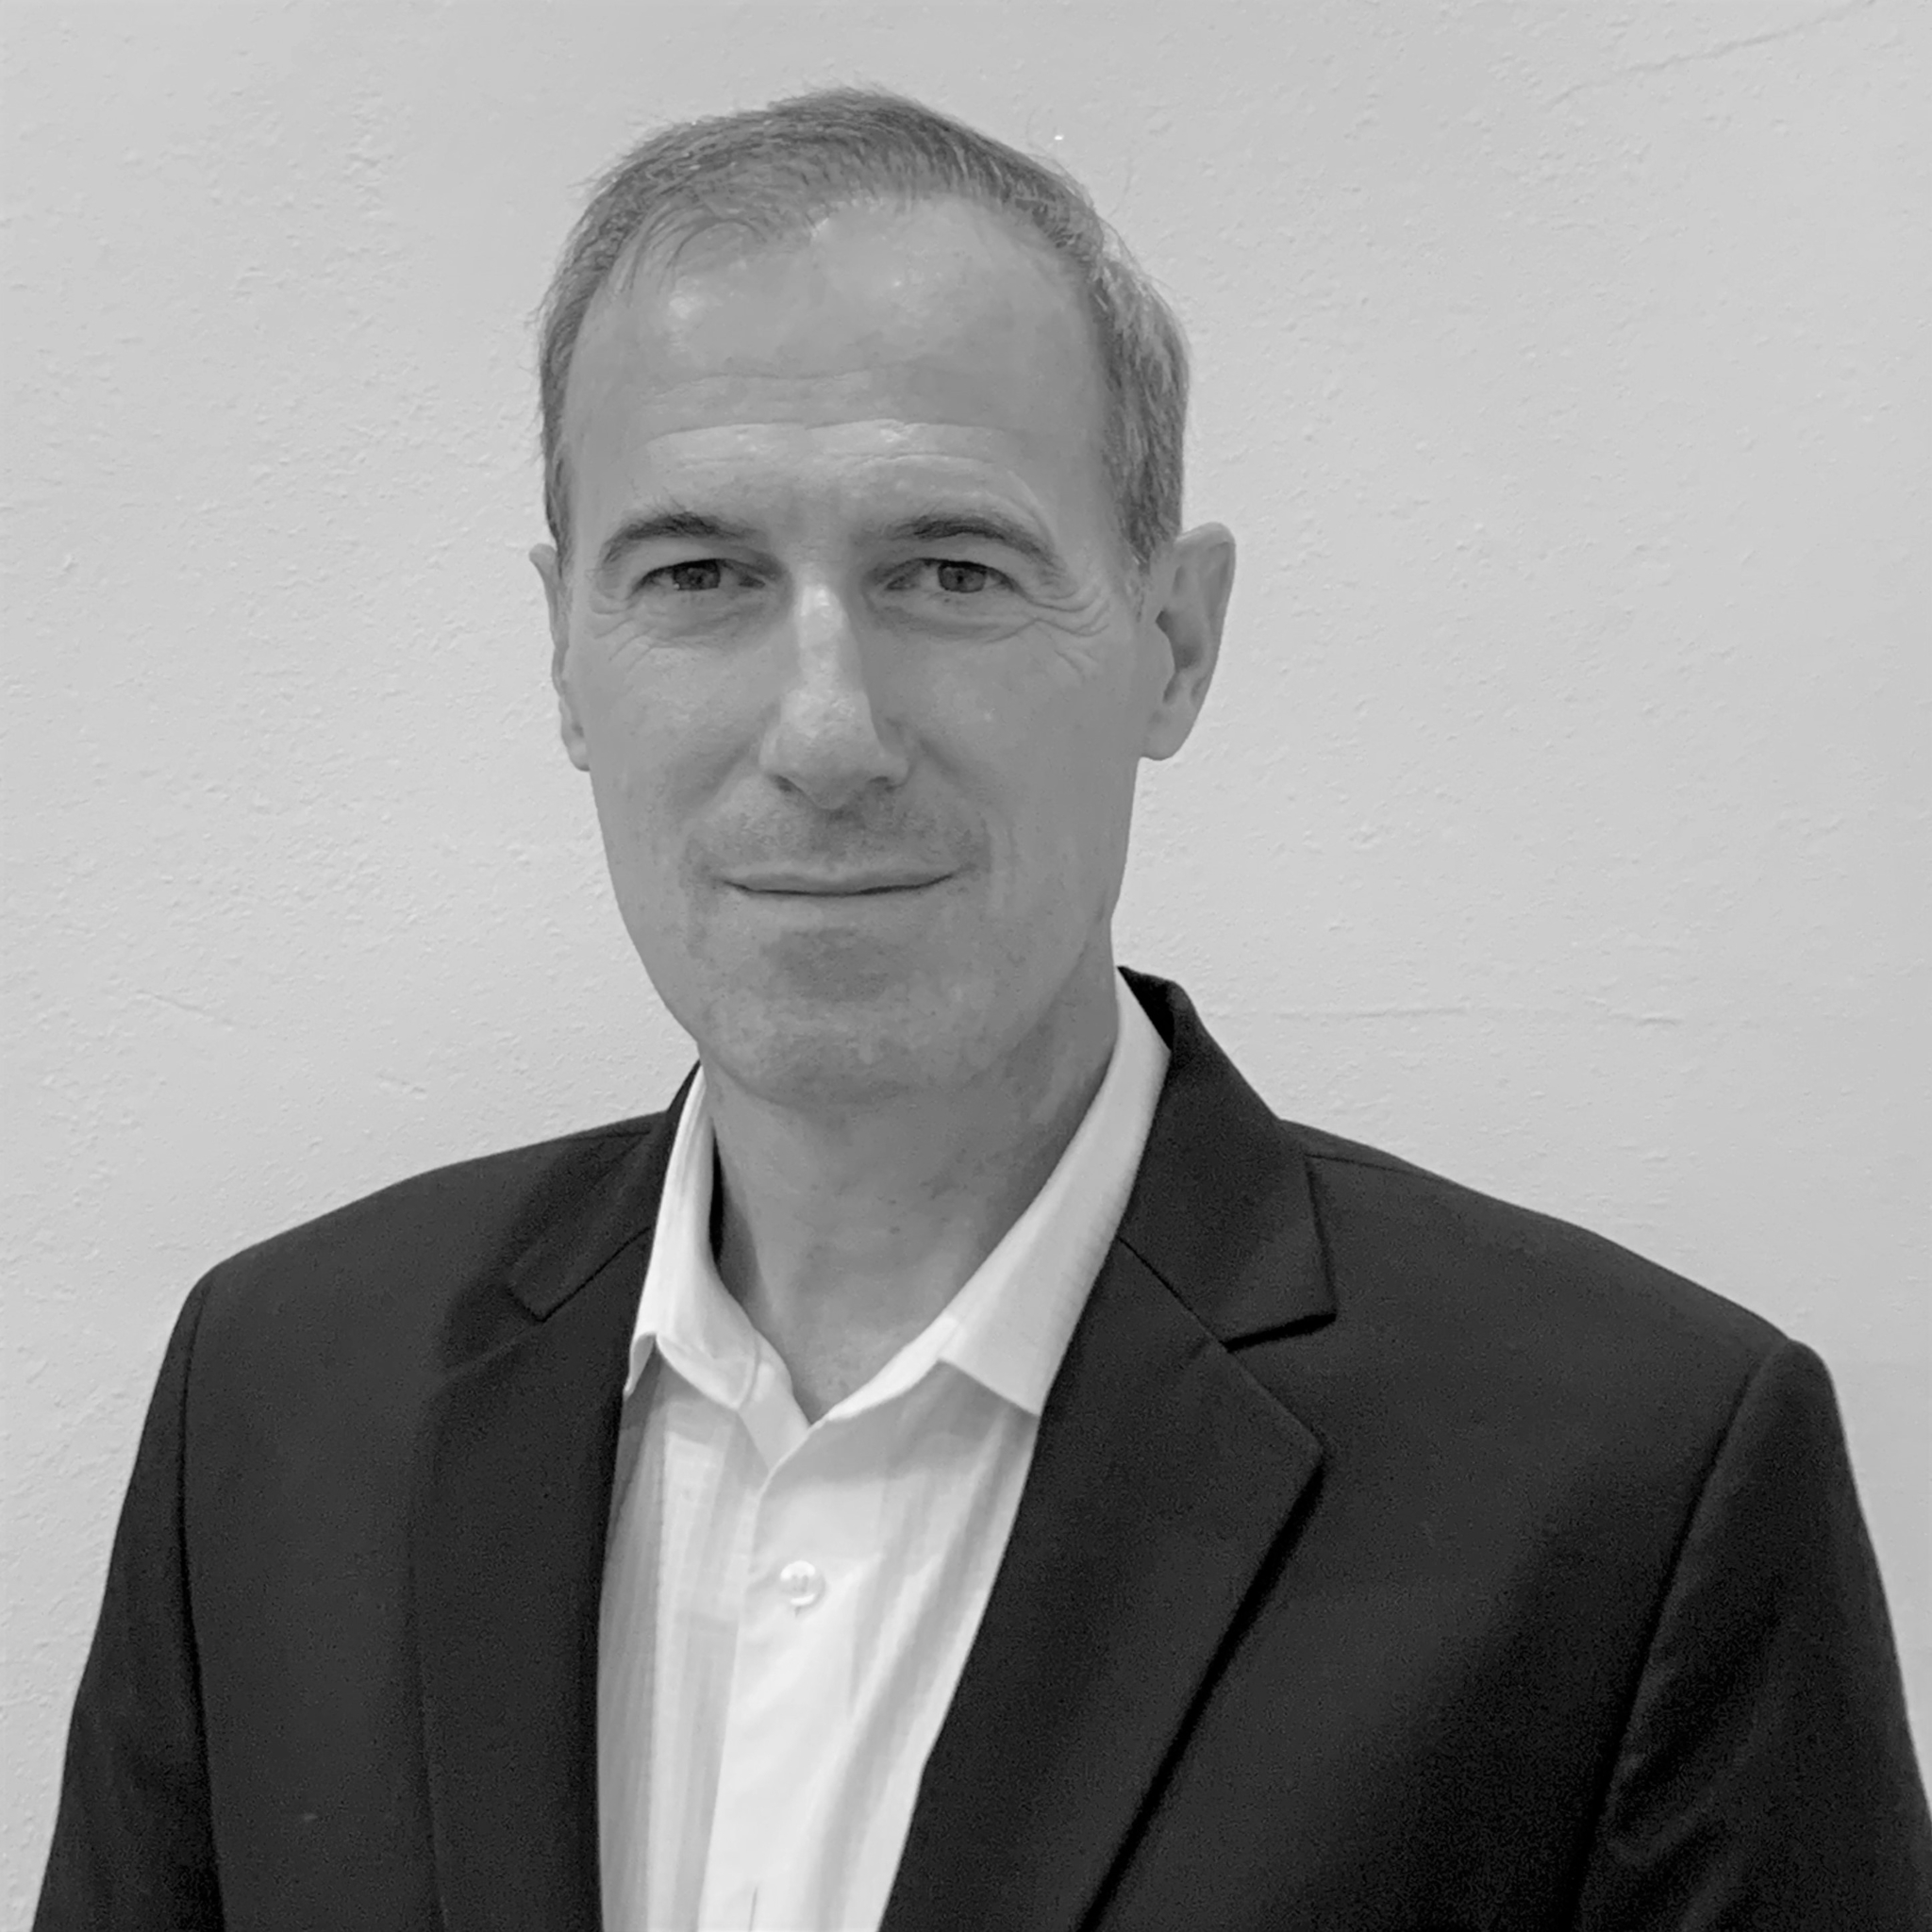 Tyre recycling company Wastefront appoints Vianney Valès CEO